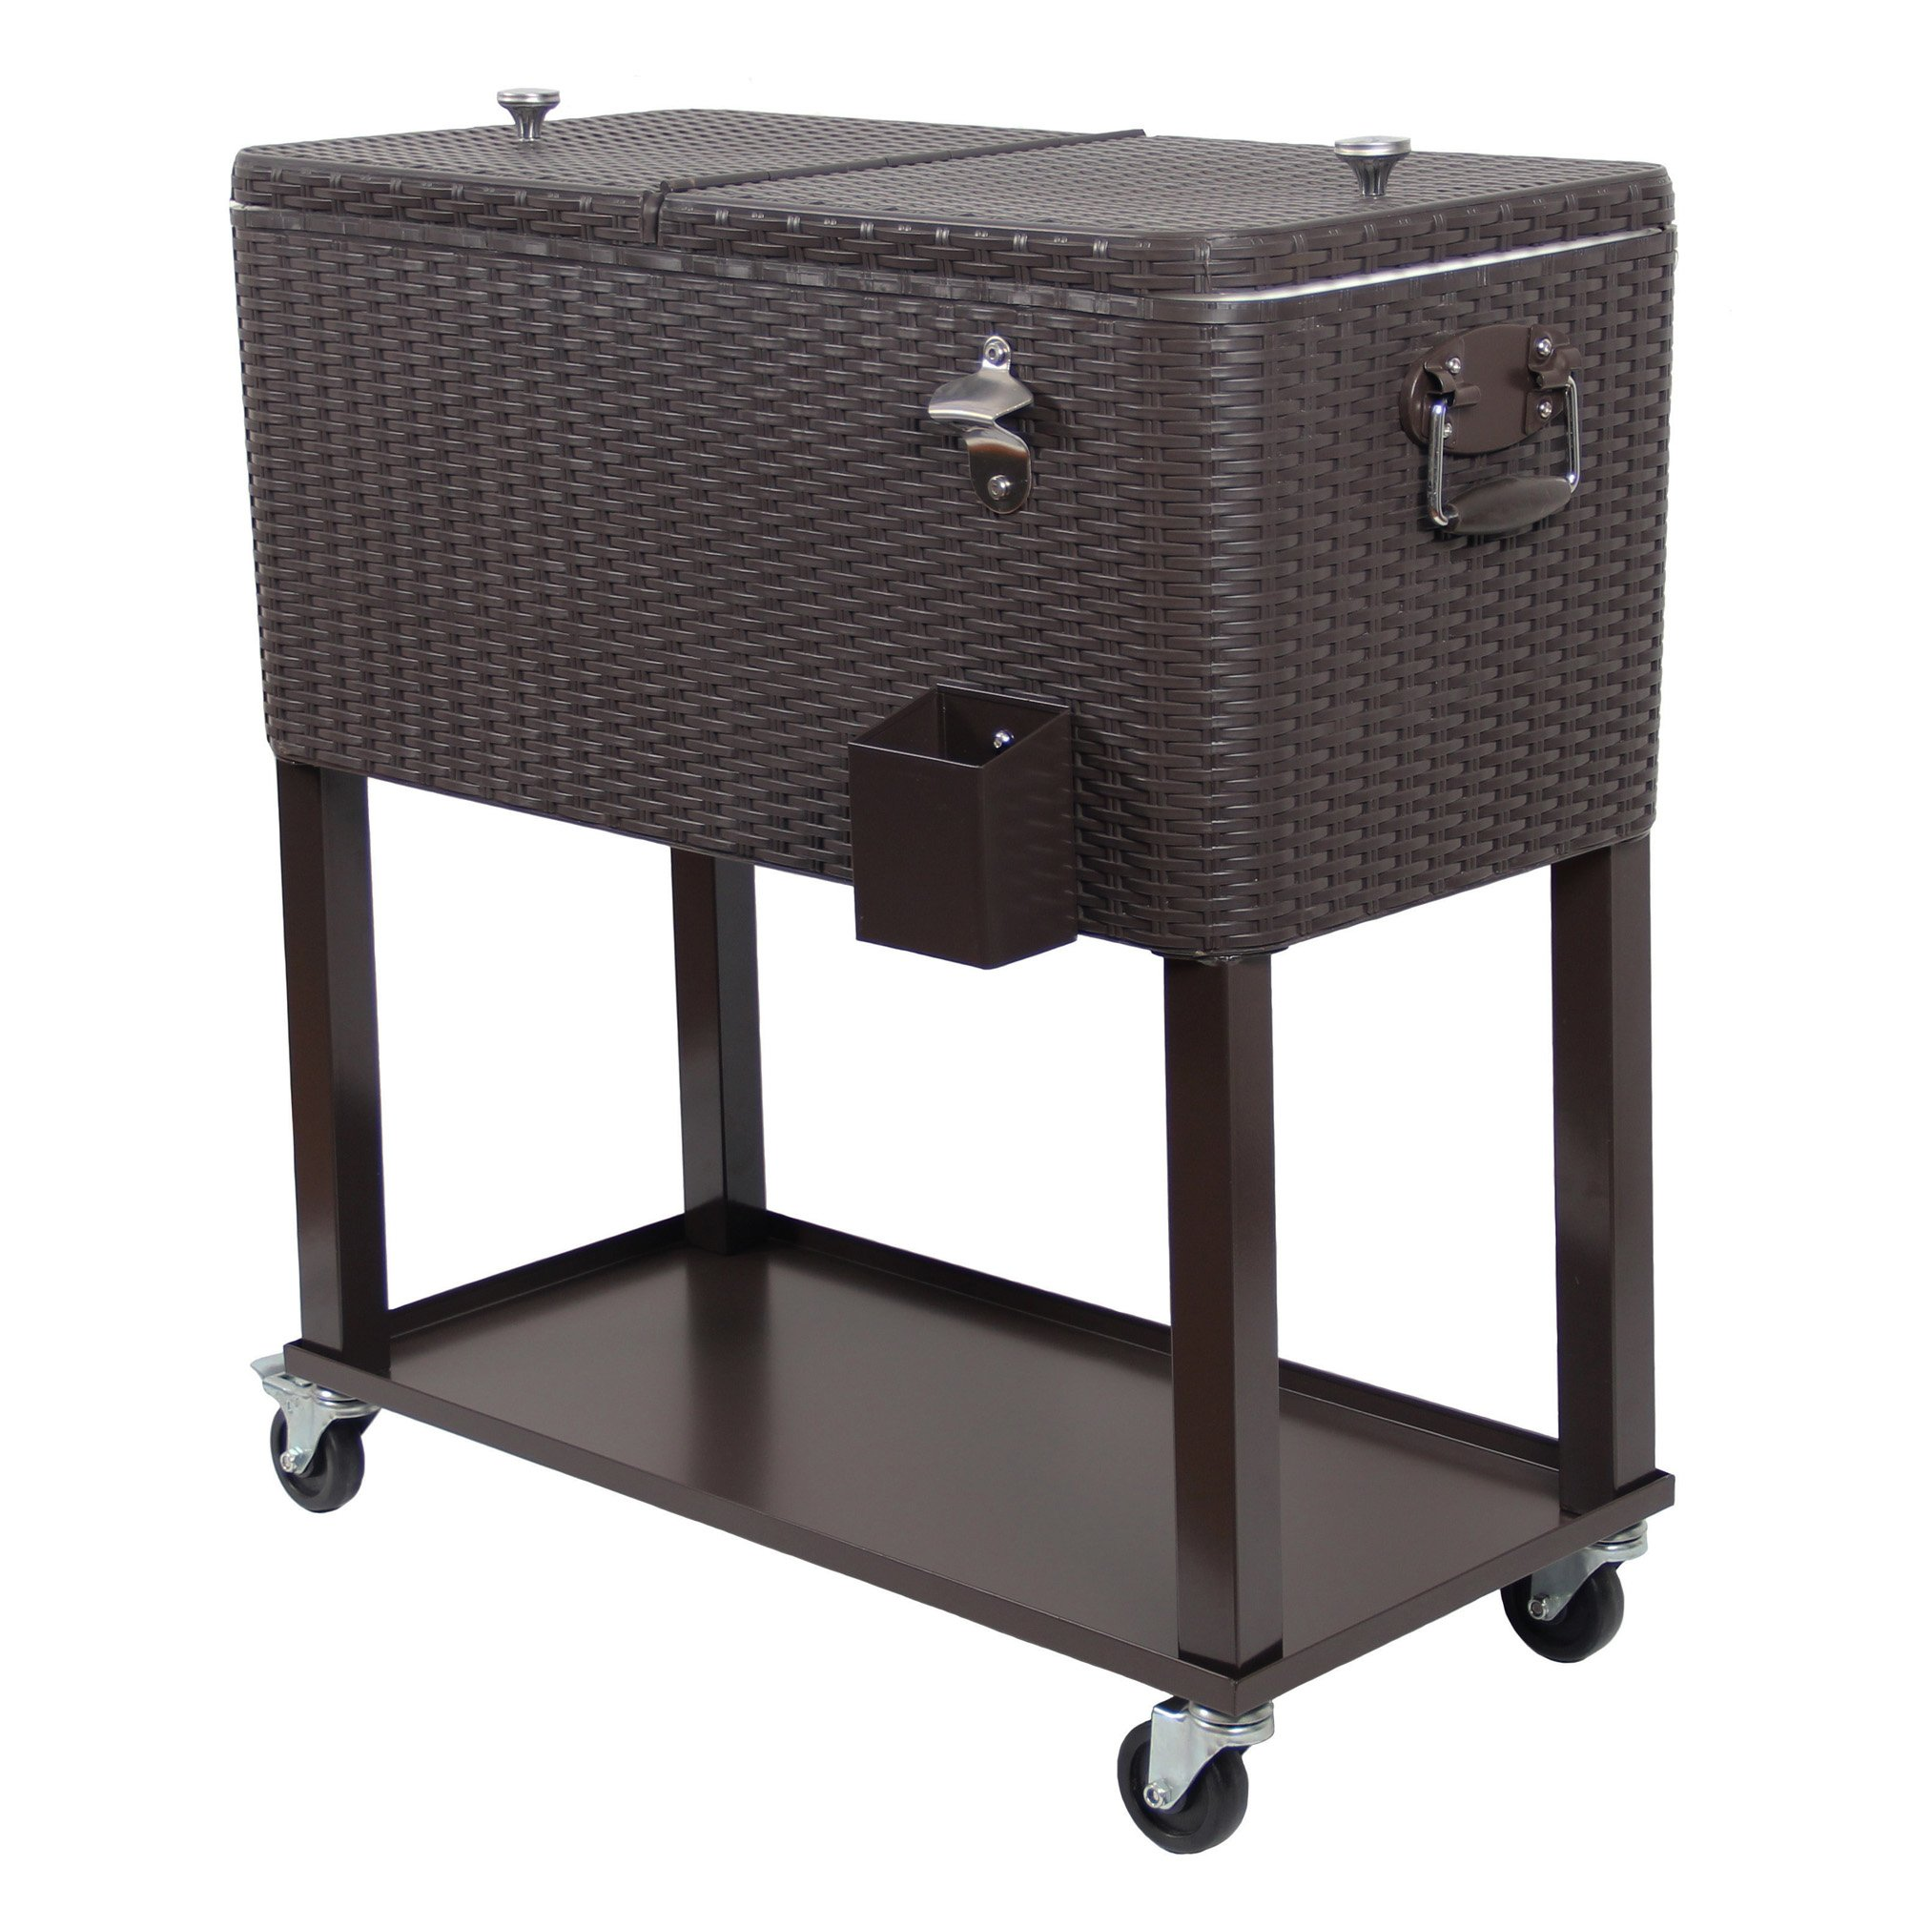 UPHA 80 Quart Rolling Ice Chest Portable Party Bar Drink Entertaining Outdoor Patio Cooler Cart on Wheels with Shelf,Brown Wicker Pattern by UPHA